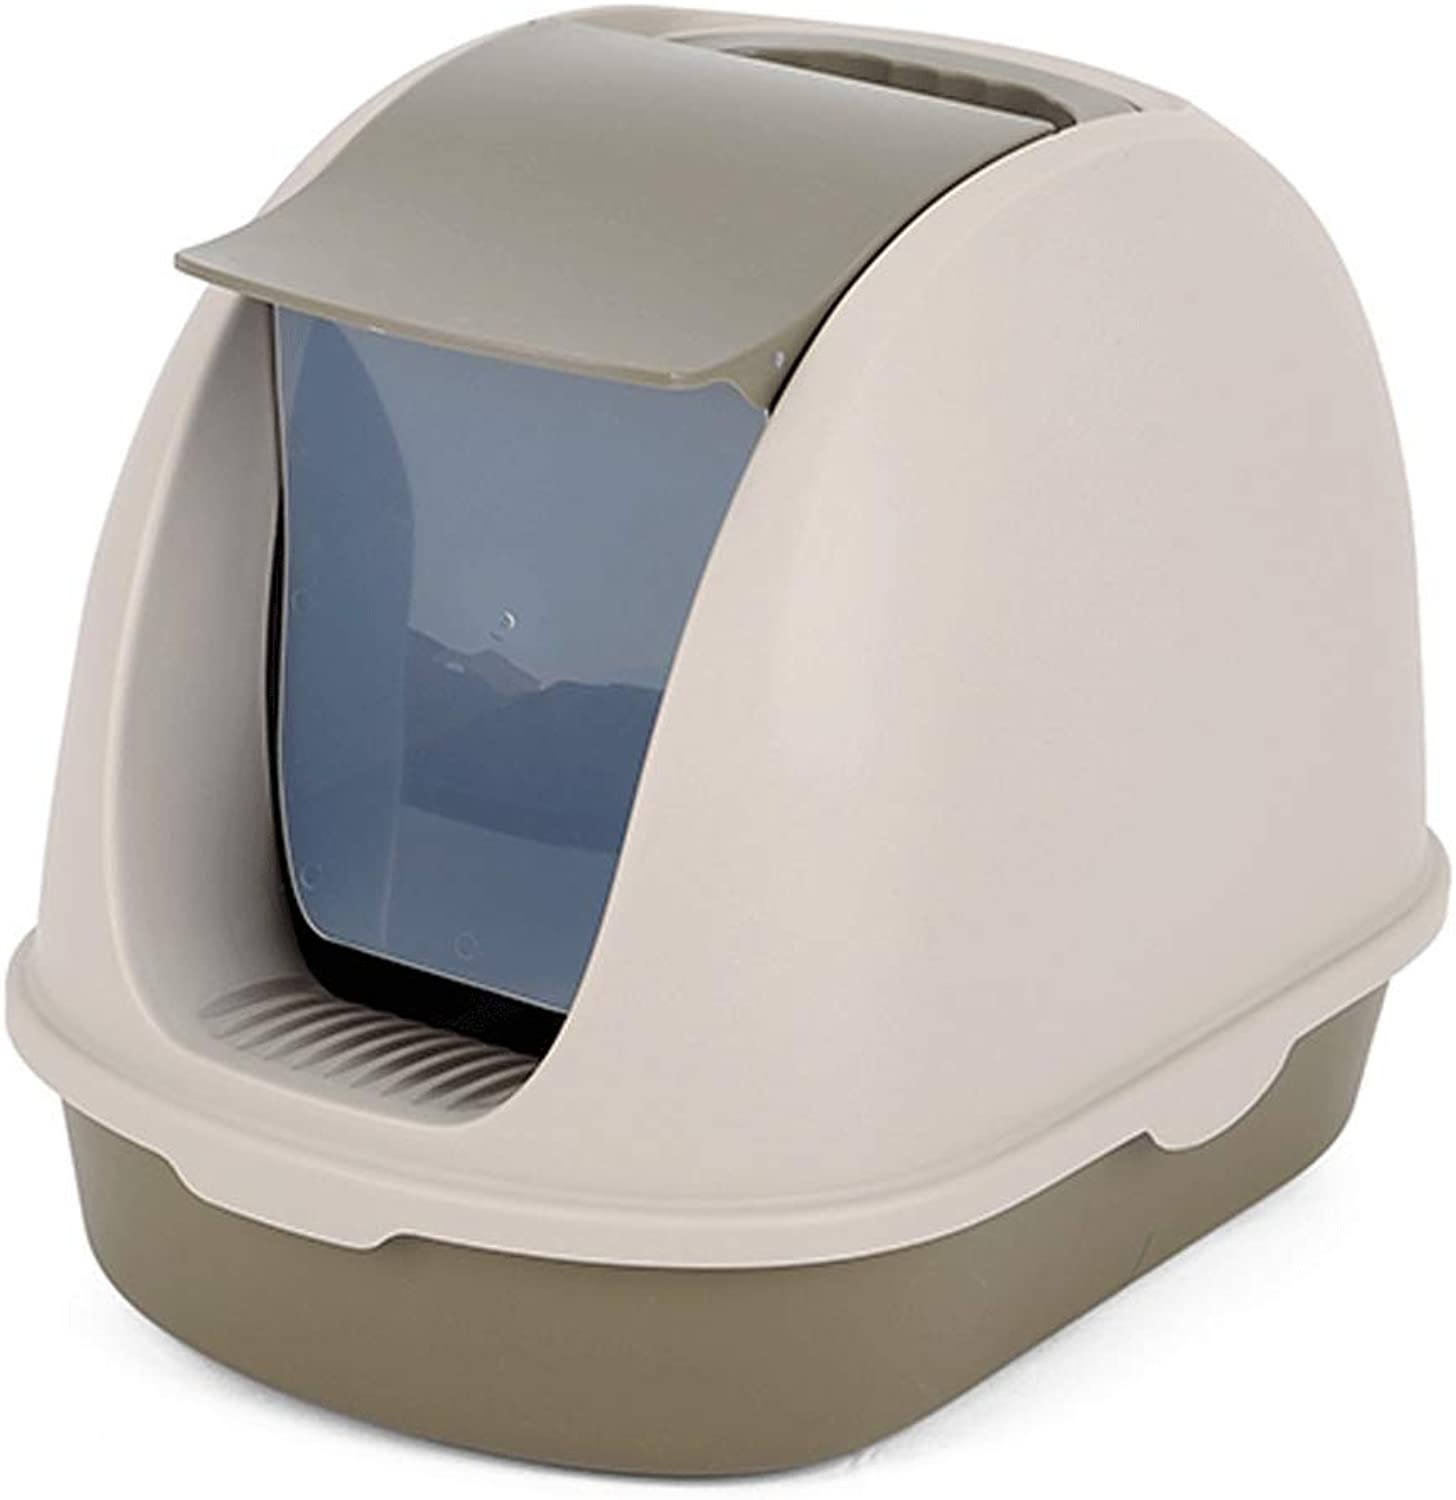 Portable Cat Litter Box Hooded Large Space Toilet with Handle and Bucket Easy to Clean, Deodorant and SpillProof Design (color   Coffee)